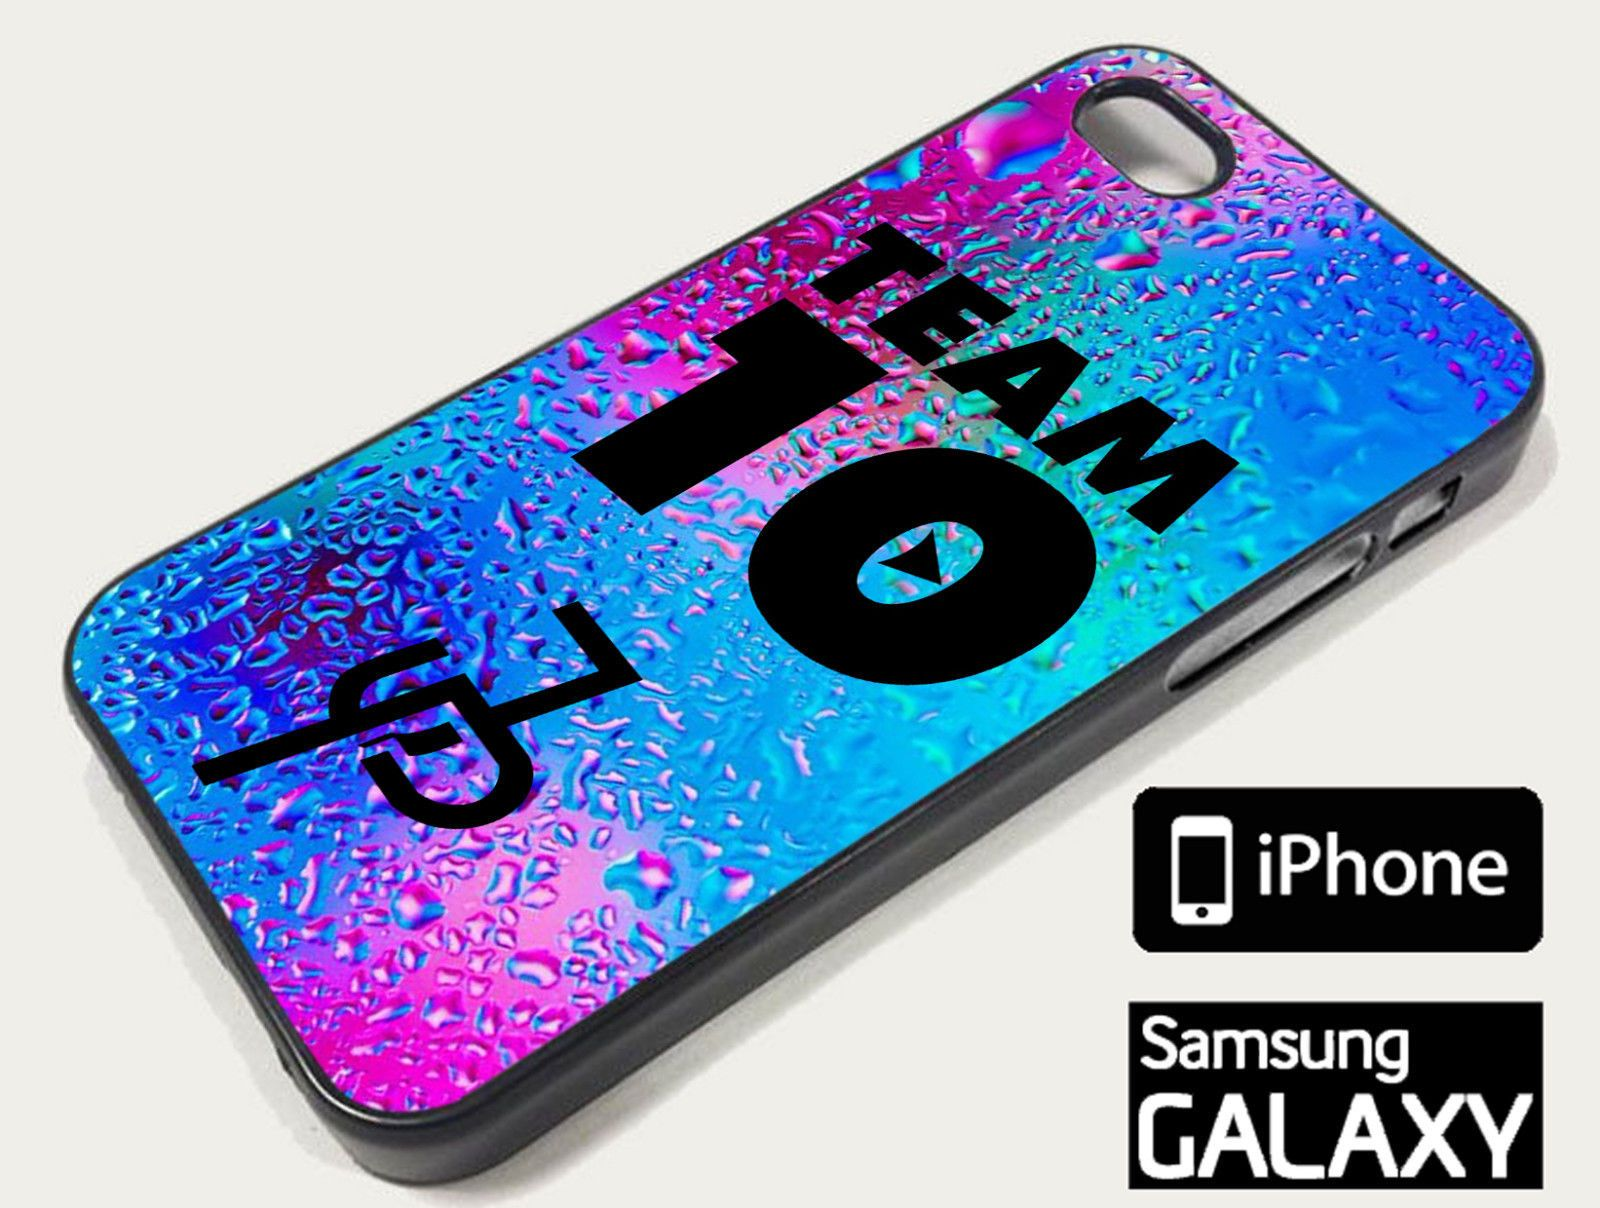 buy online 86c84 47169 Details about JAKE PAUL GALAXY Phone Case Cover iPhone Samsung ...